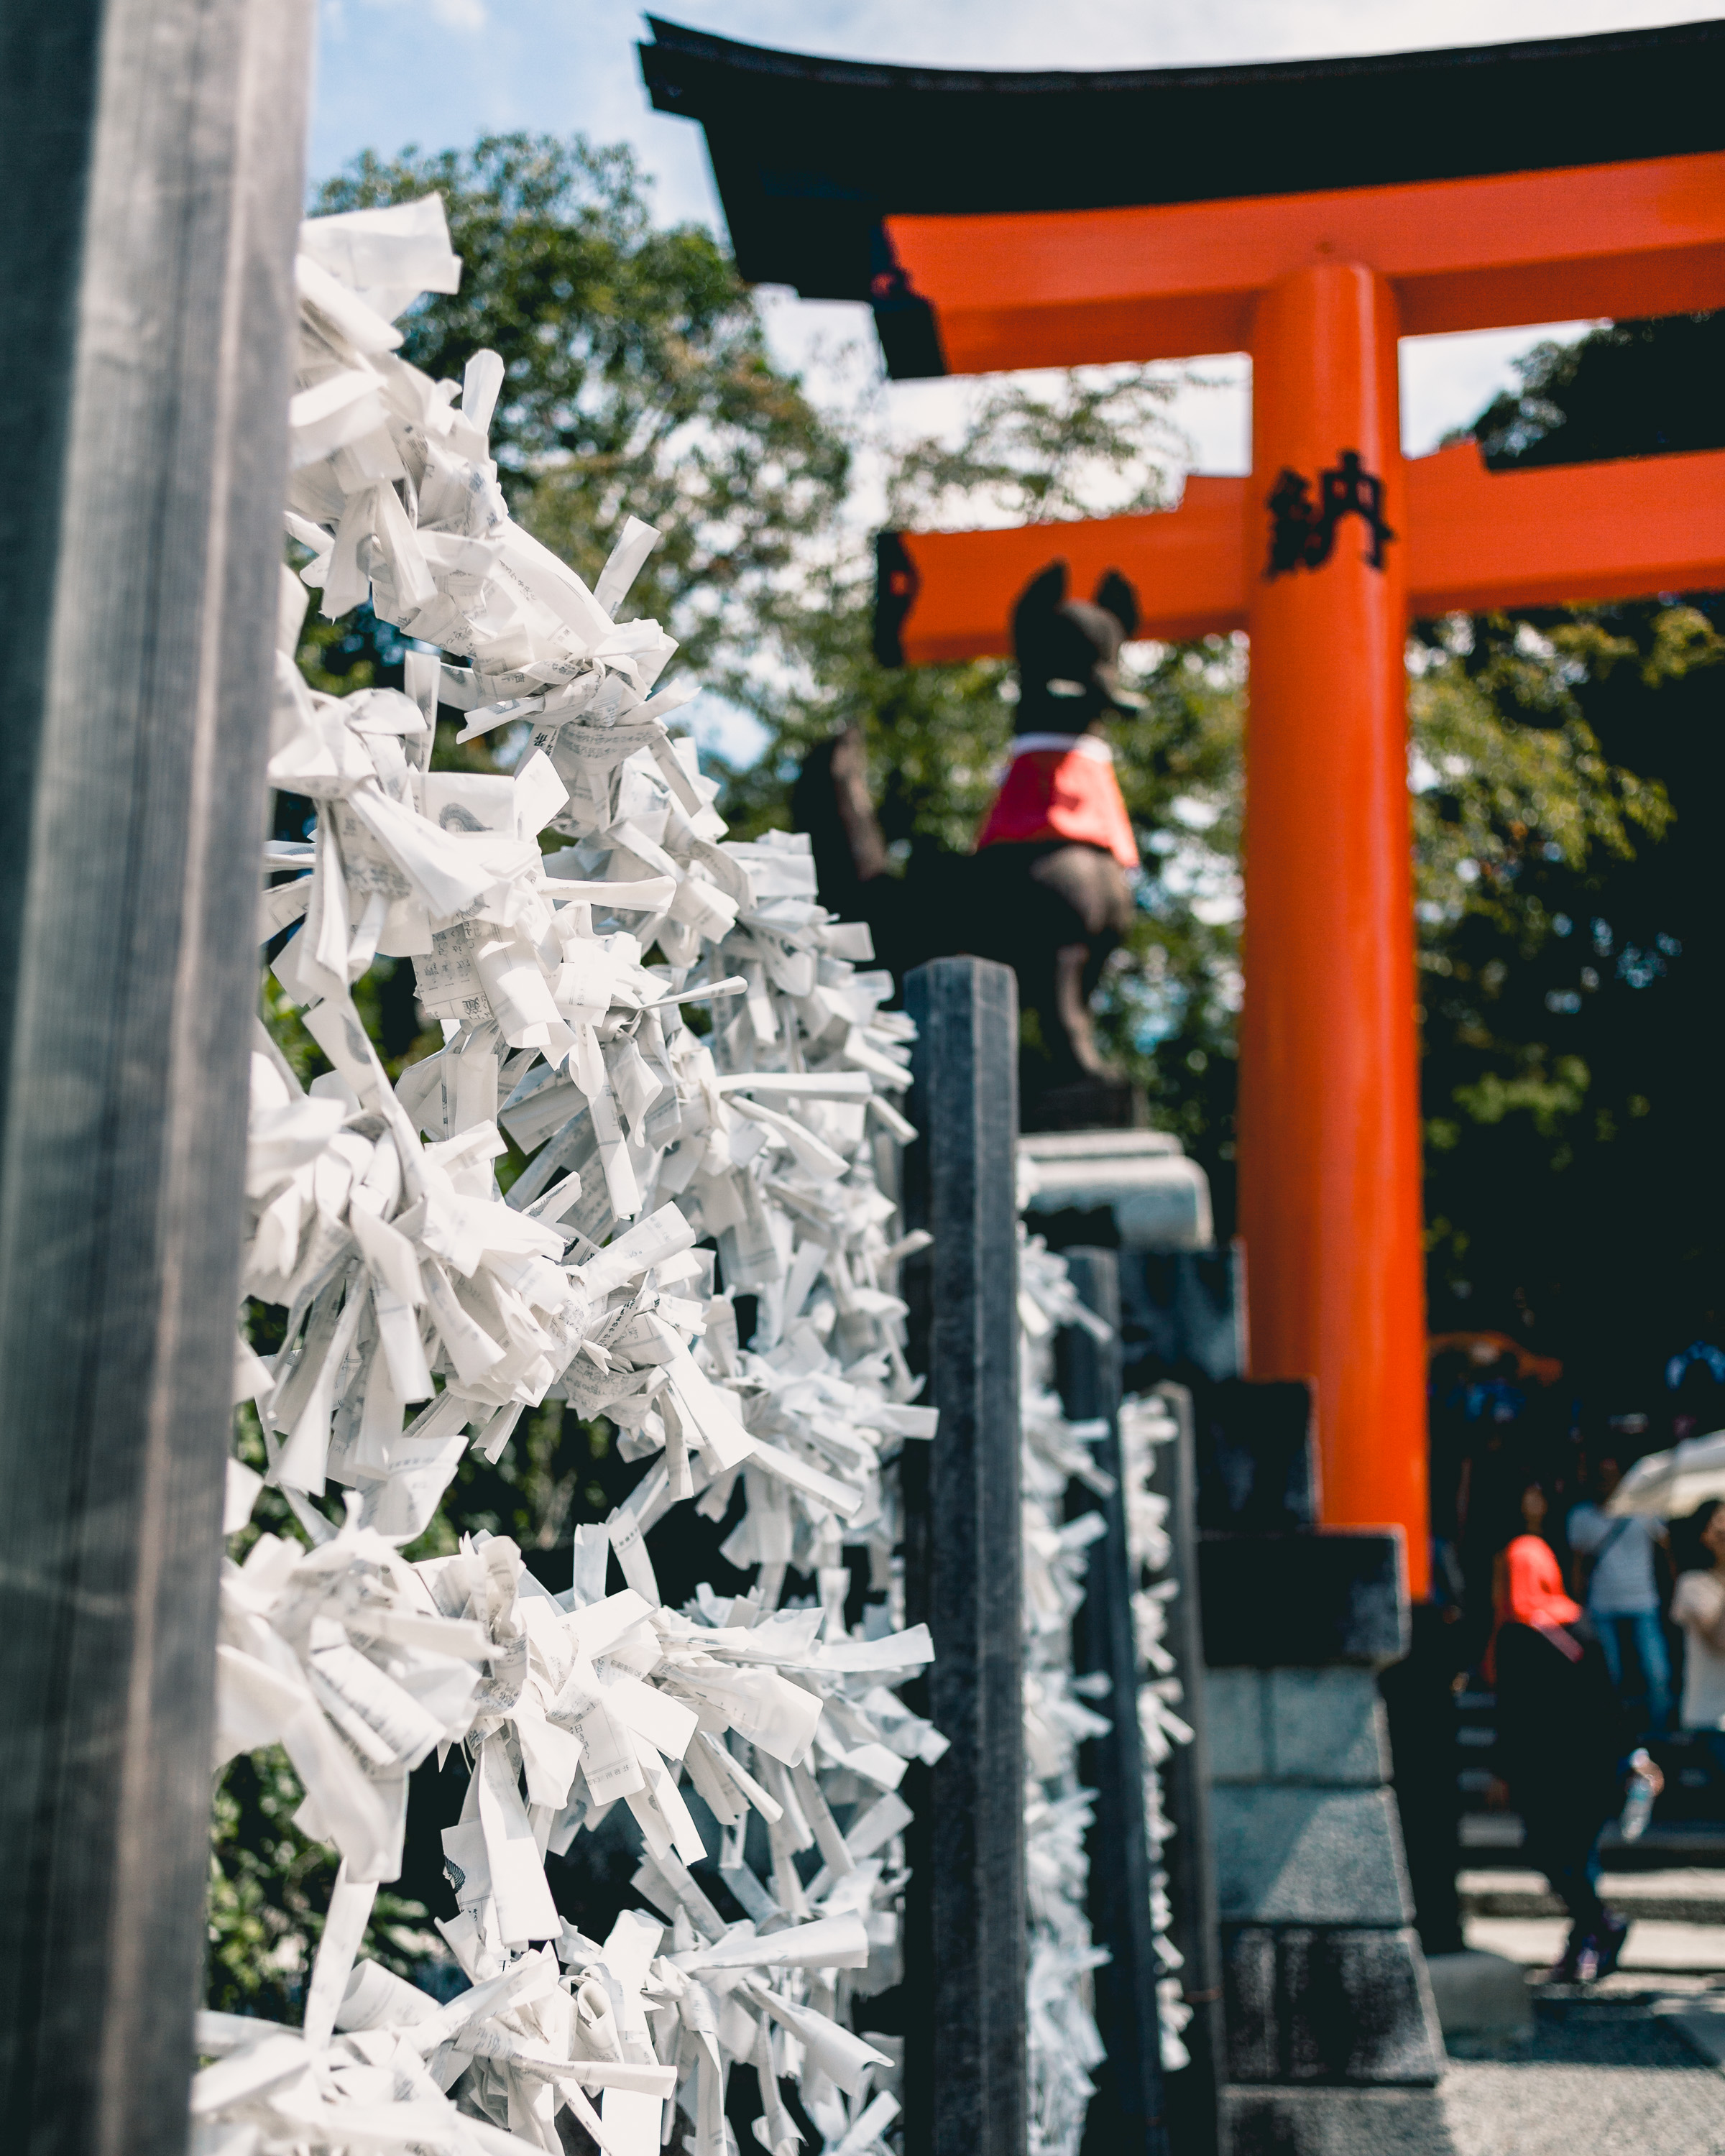 Paper Fortunes tied to a fence below a giant orange Torii Gate at Fushimi Inari Shrine, Kyoto, Japan